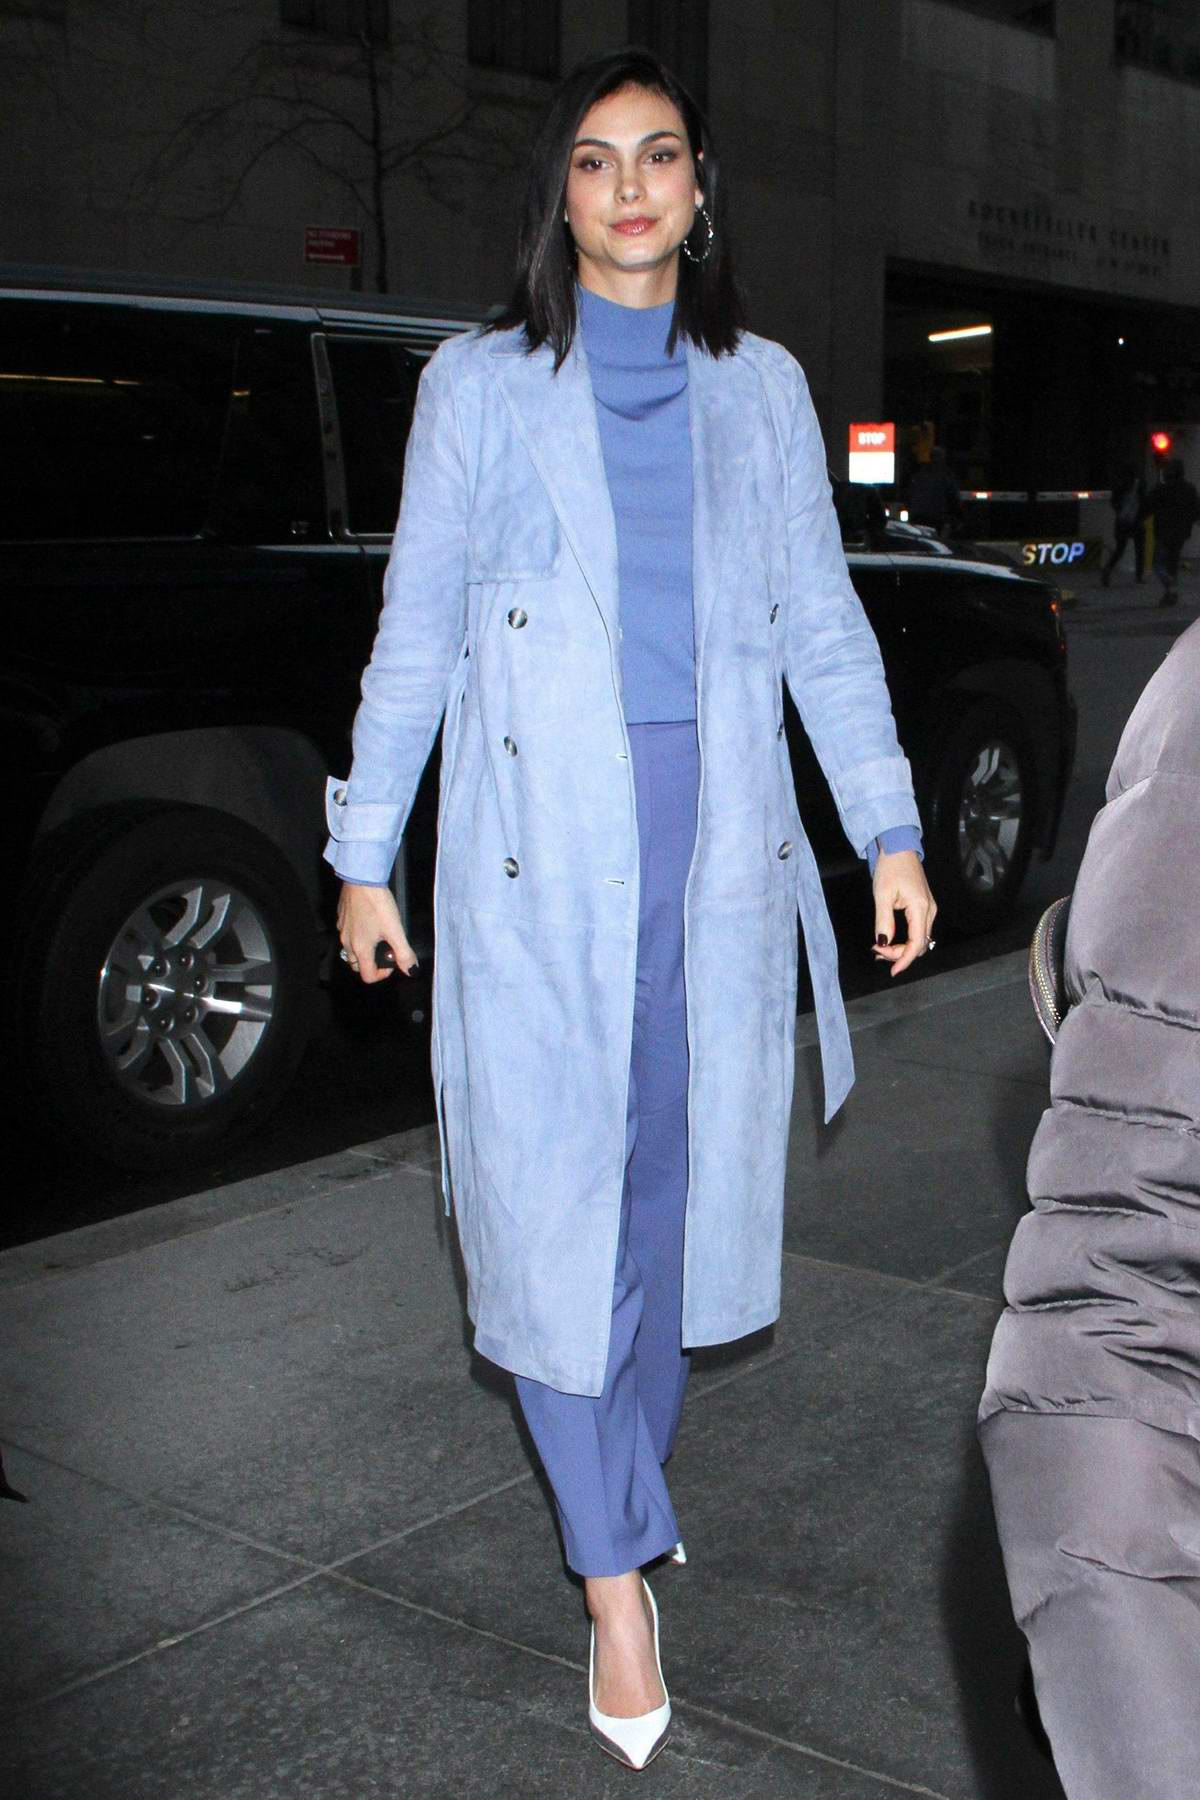 Morena Baccarin seen in an all purple ensemble as she arrives at NBC's New York Live in New York City